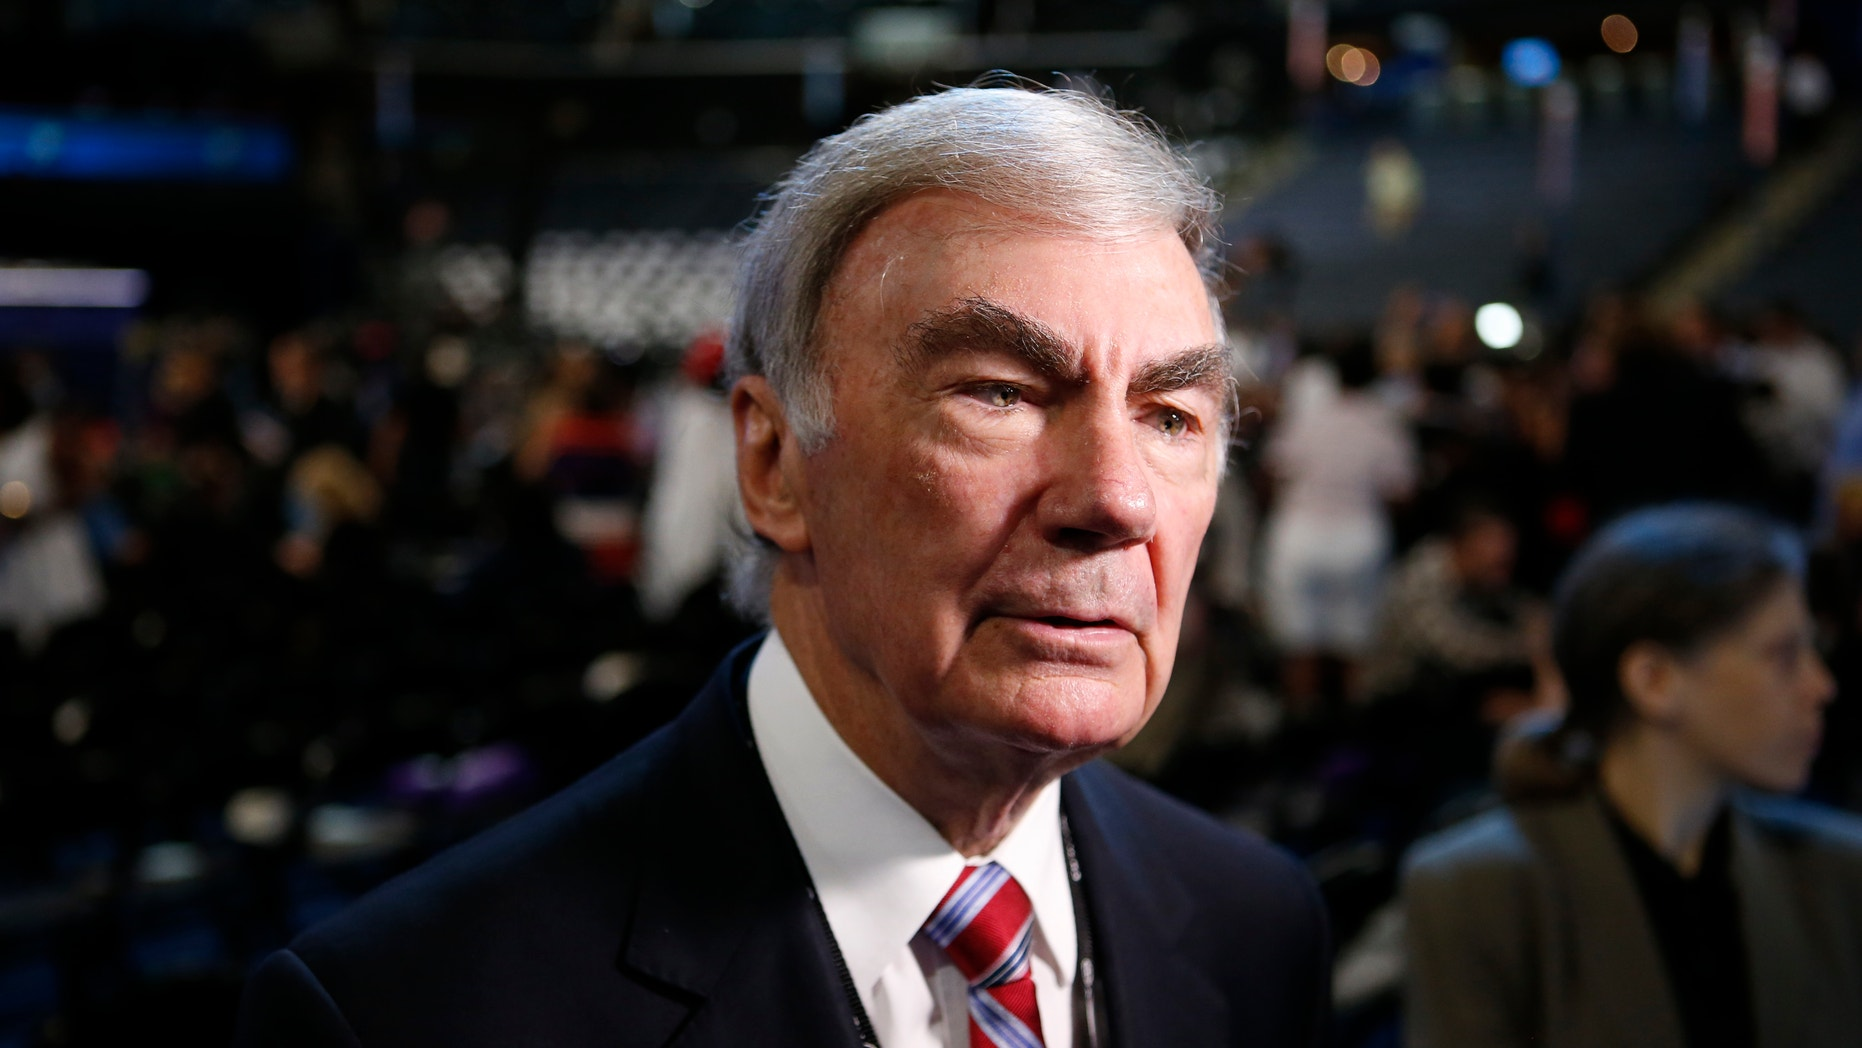 In this Sept. 5, 2012 file photo, Sam Donaldson is seen on the floor at the Democratic National Convention in Charlotte, N.C.